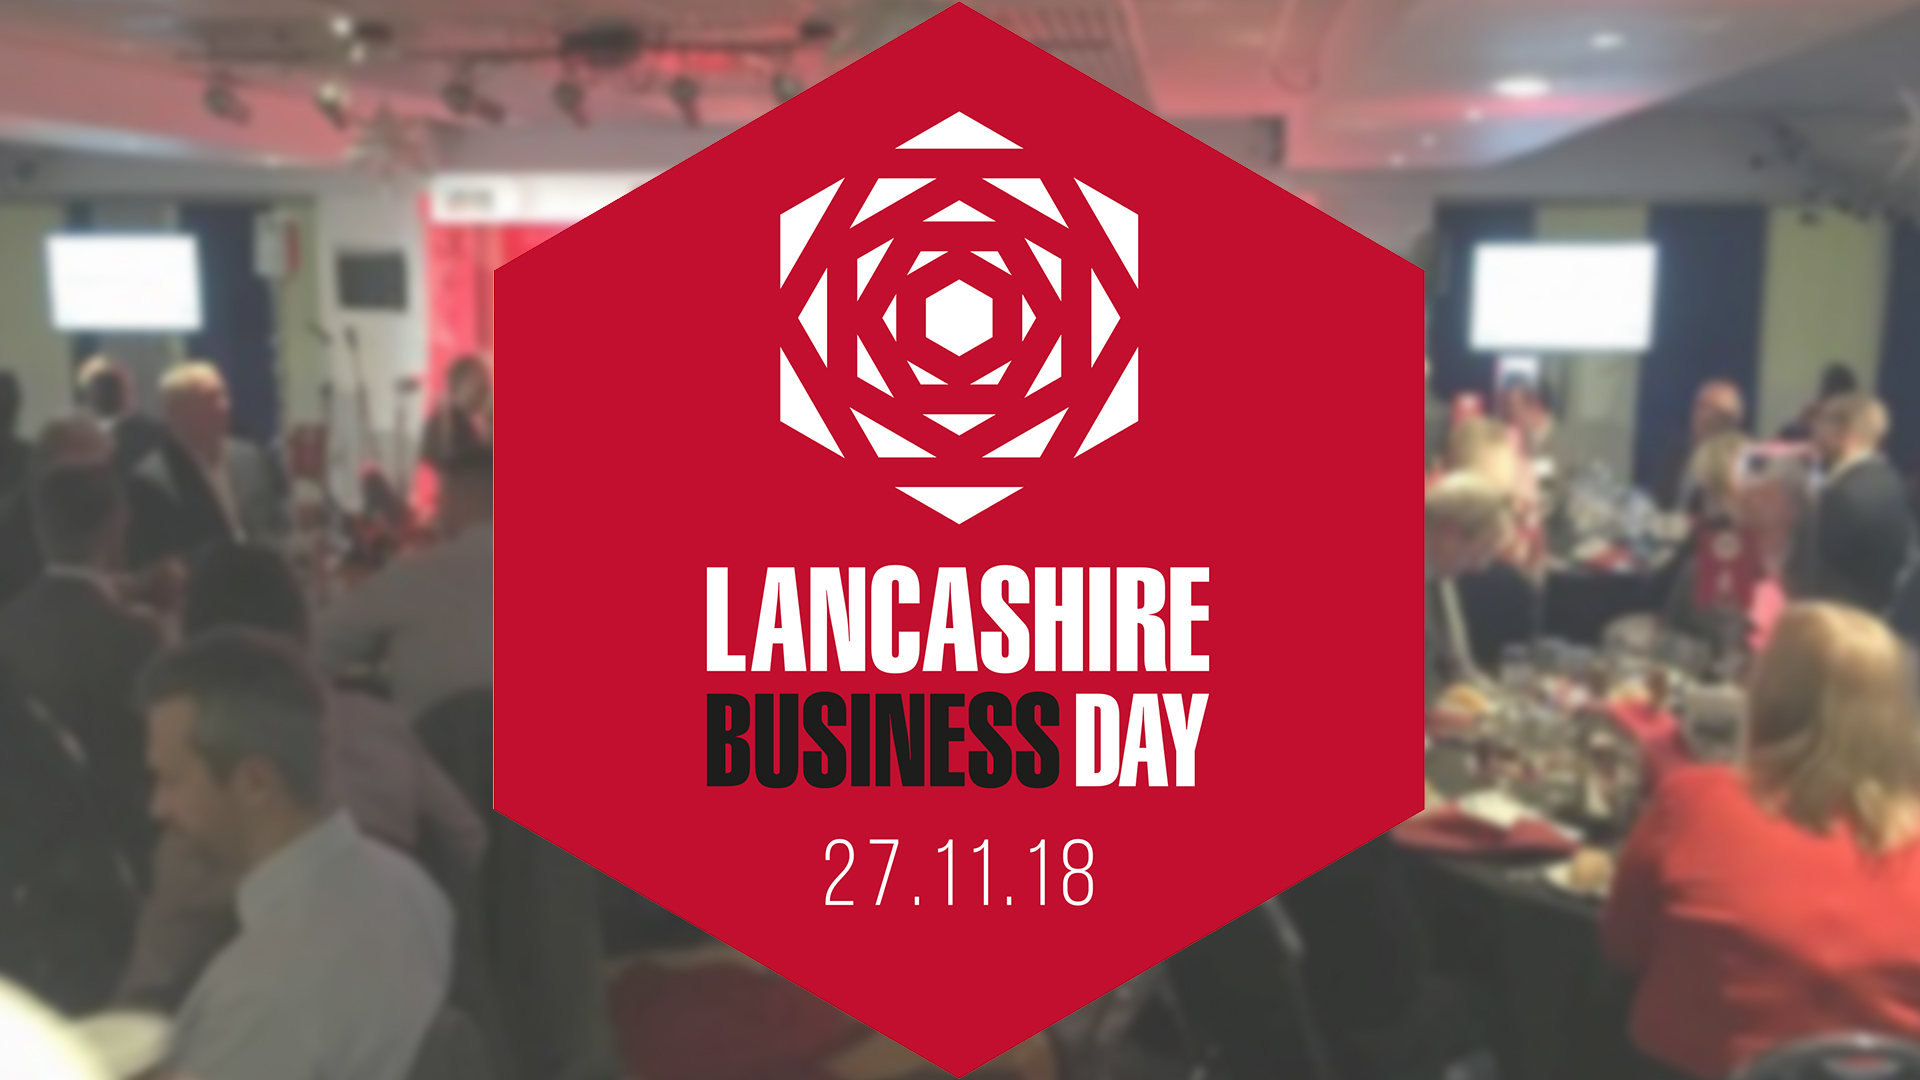 Financial Times journalist to speak at Lancashire Business Day